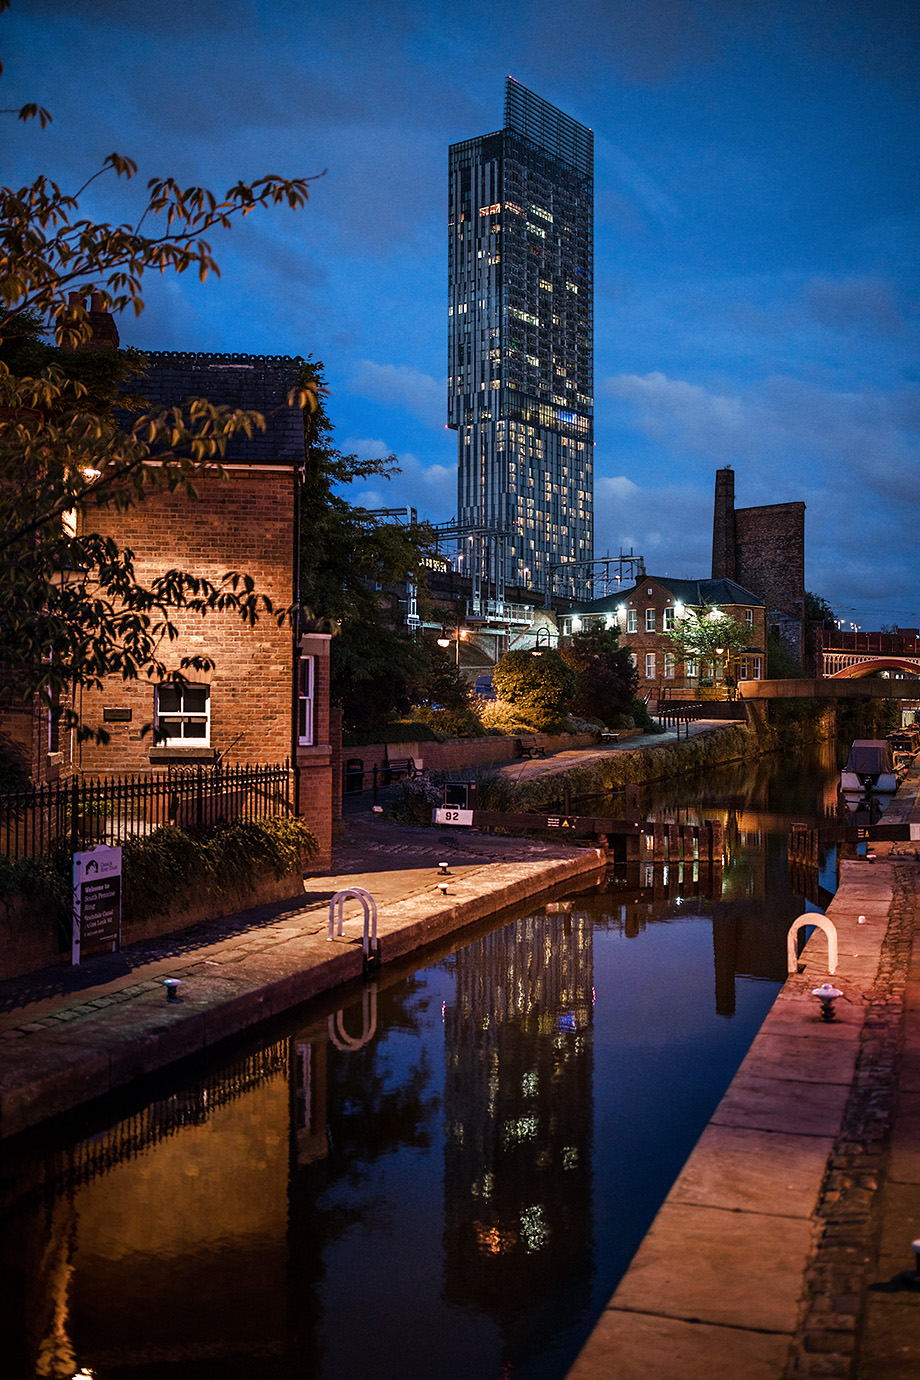 Castlefield area of Manchester photographed at night